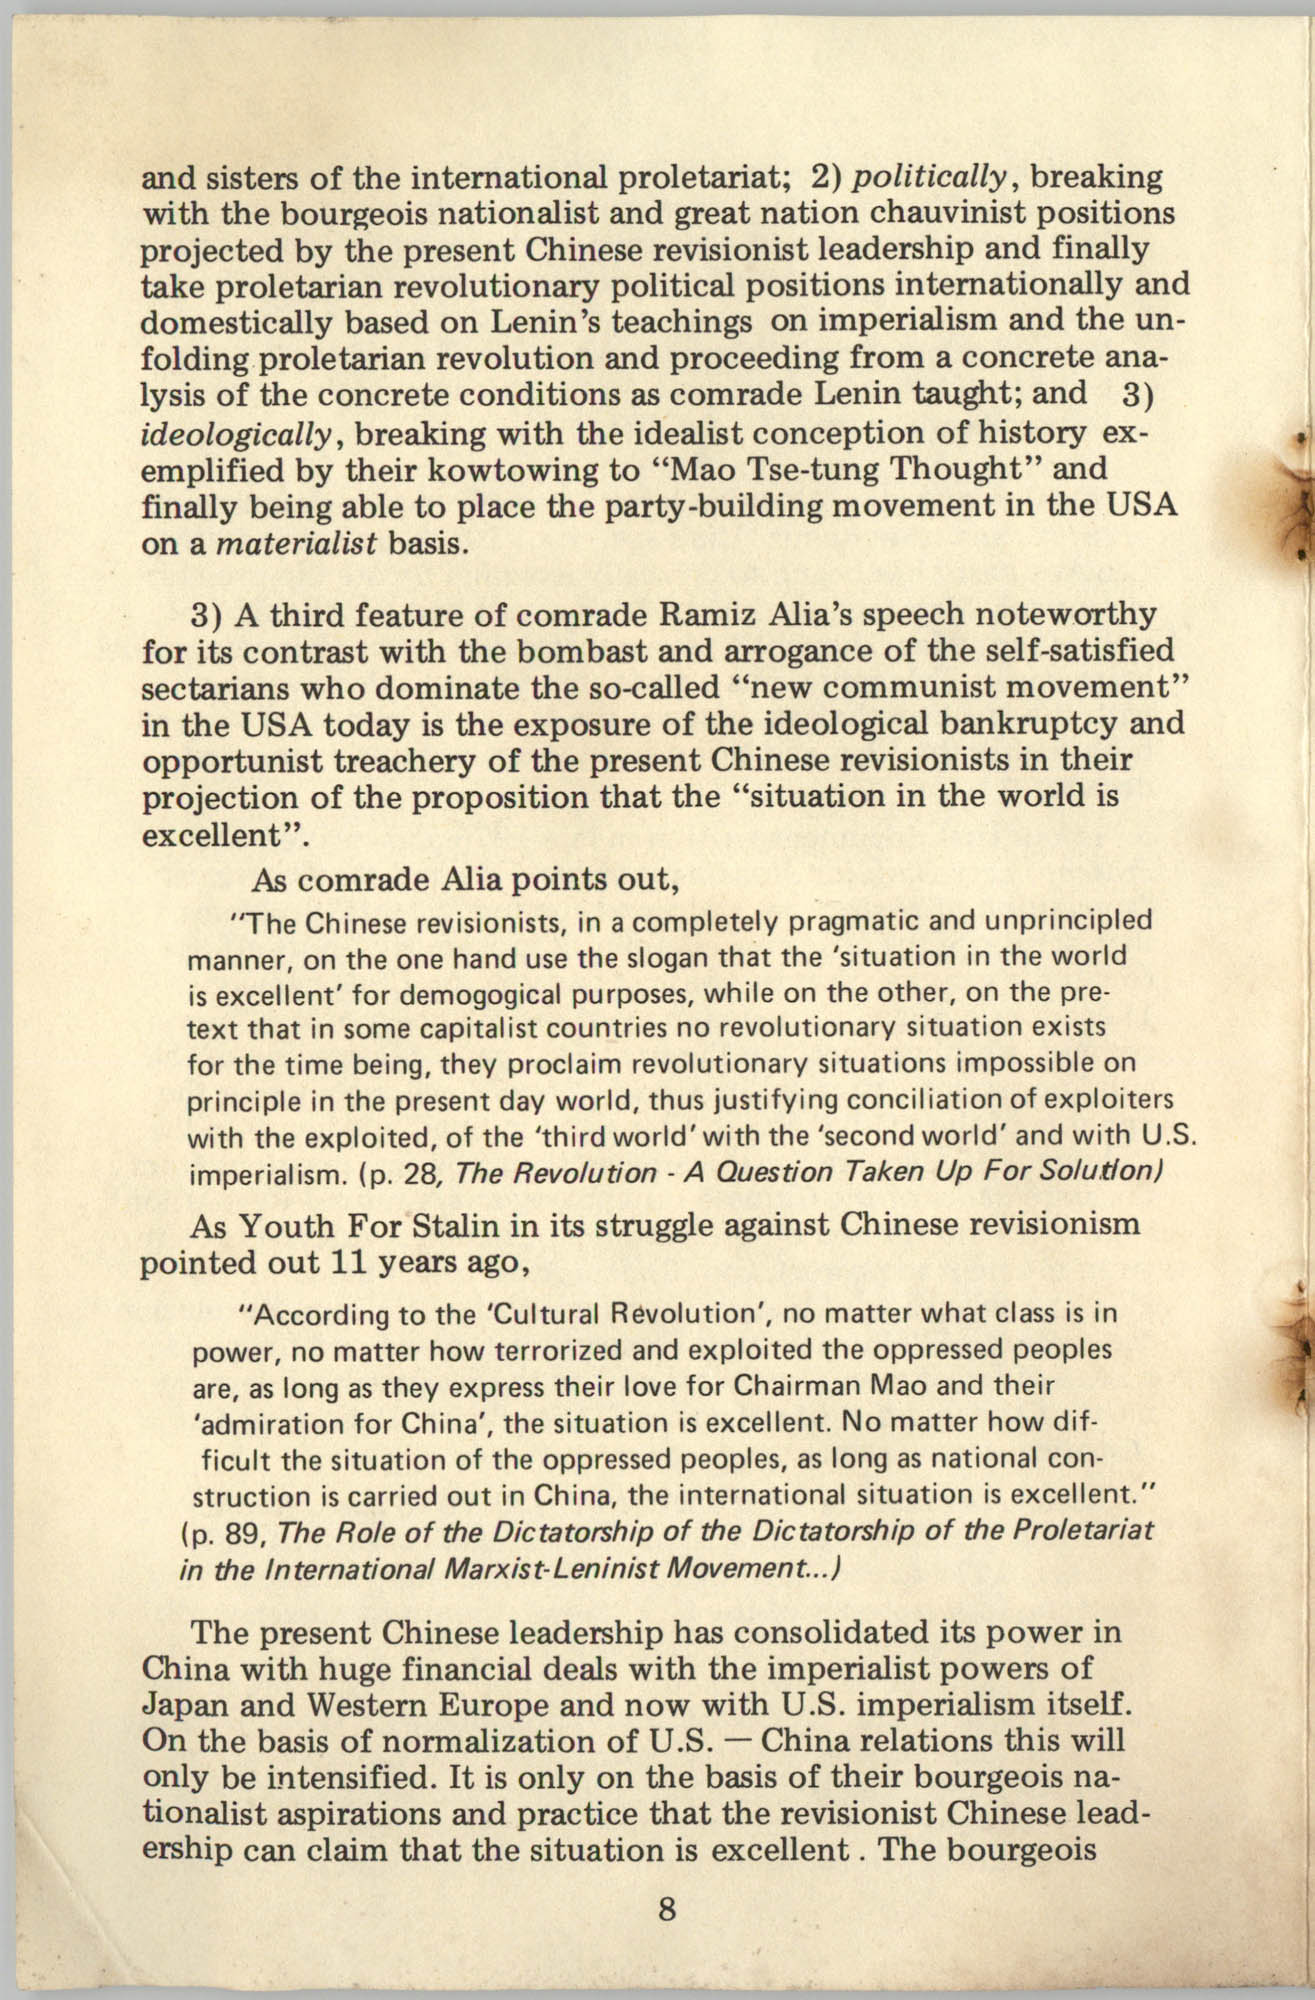 Ray O. Light Newsletter, Volume 1, Number 3, Page 8